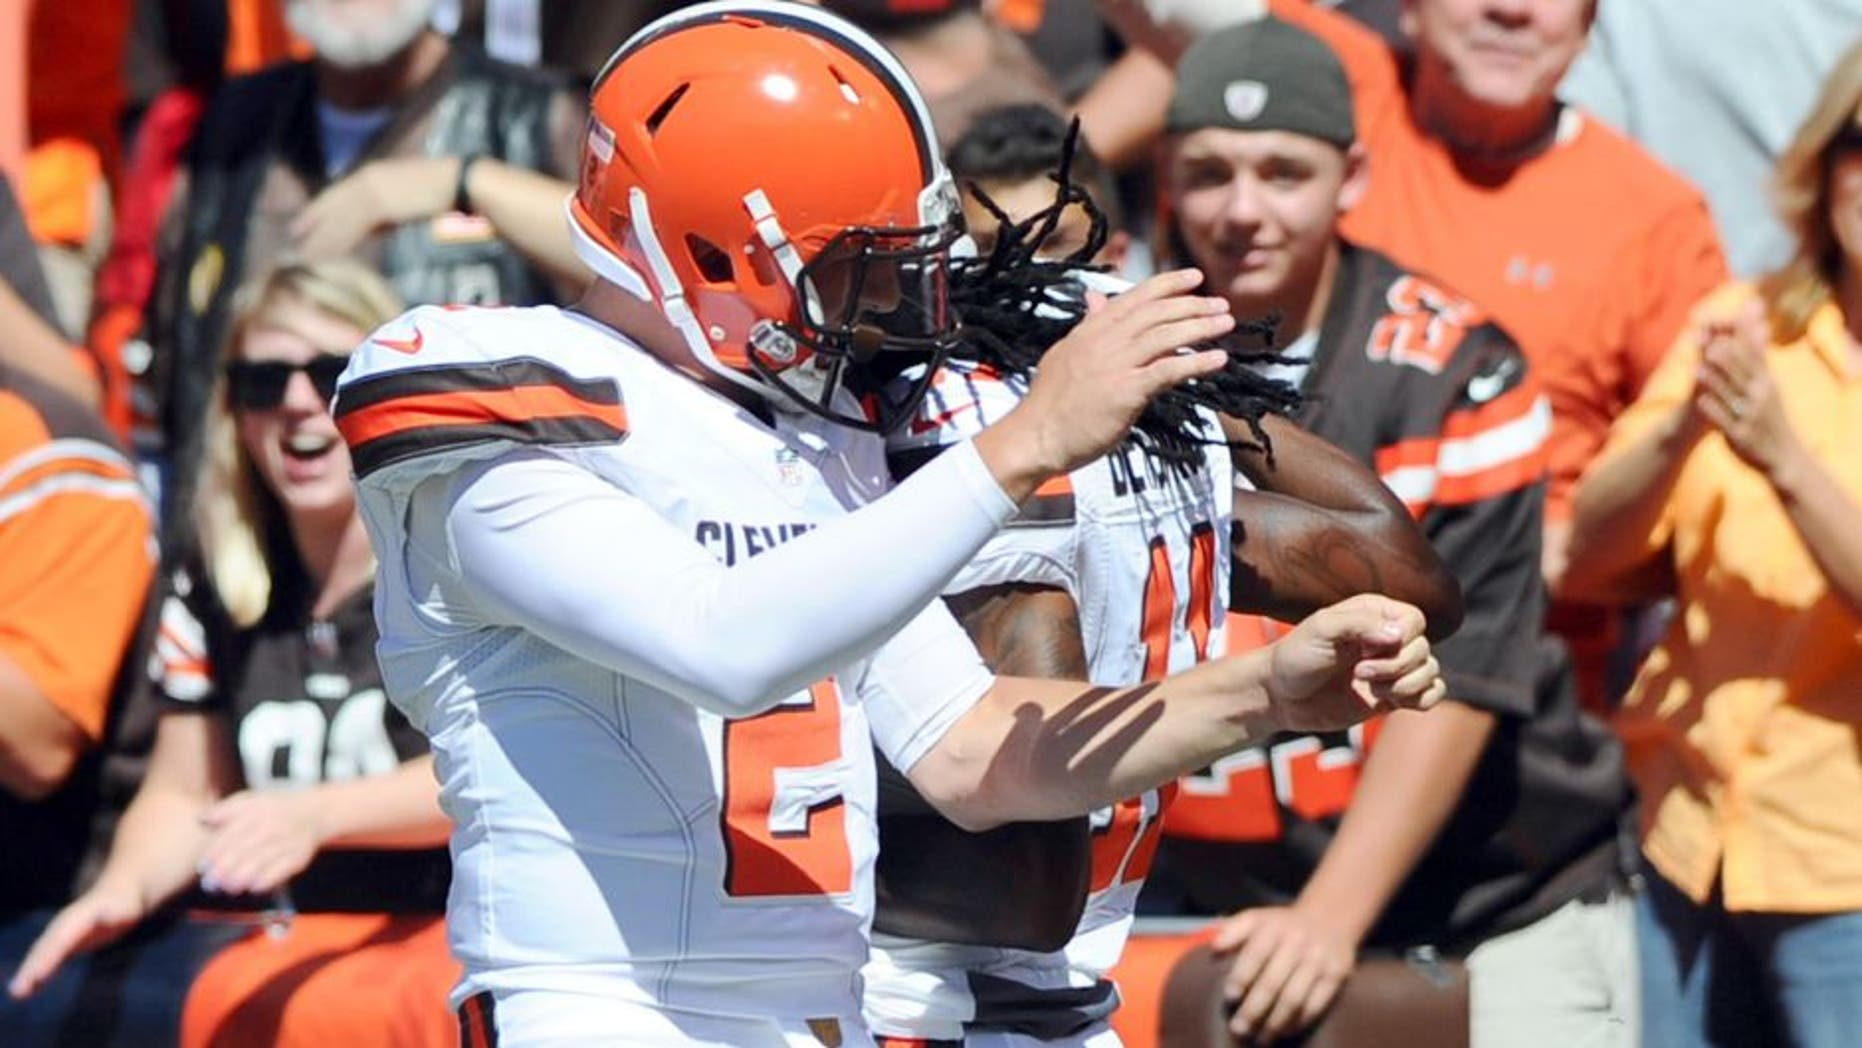 Sep 20, 2015; Cleveland, OH, USA; Cleveland Browns quarterback Johnny Manziel (2) and wide receiver Travis Benjamin (11) celebrate a first quarter touchdown pass against the Tennessee Titans at FirstEnergy Stadium. Mandatory Credit: Ken Blaze-USA TODAY Sports